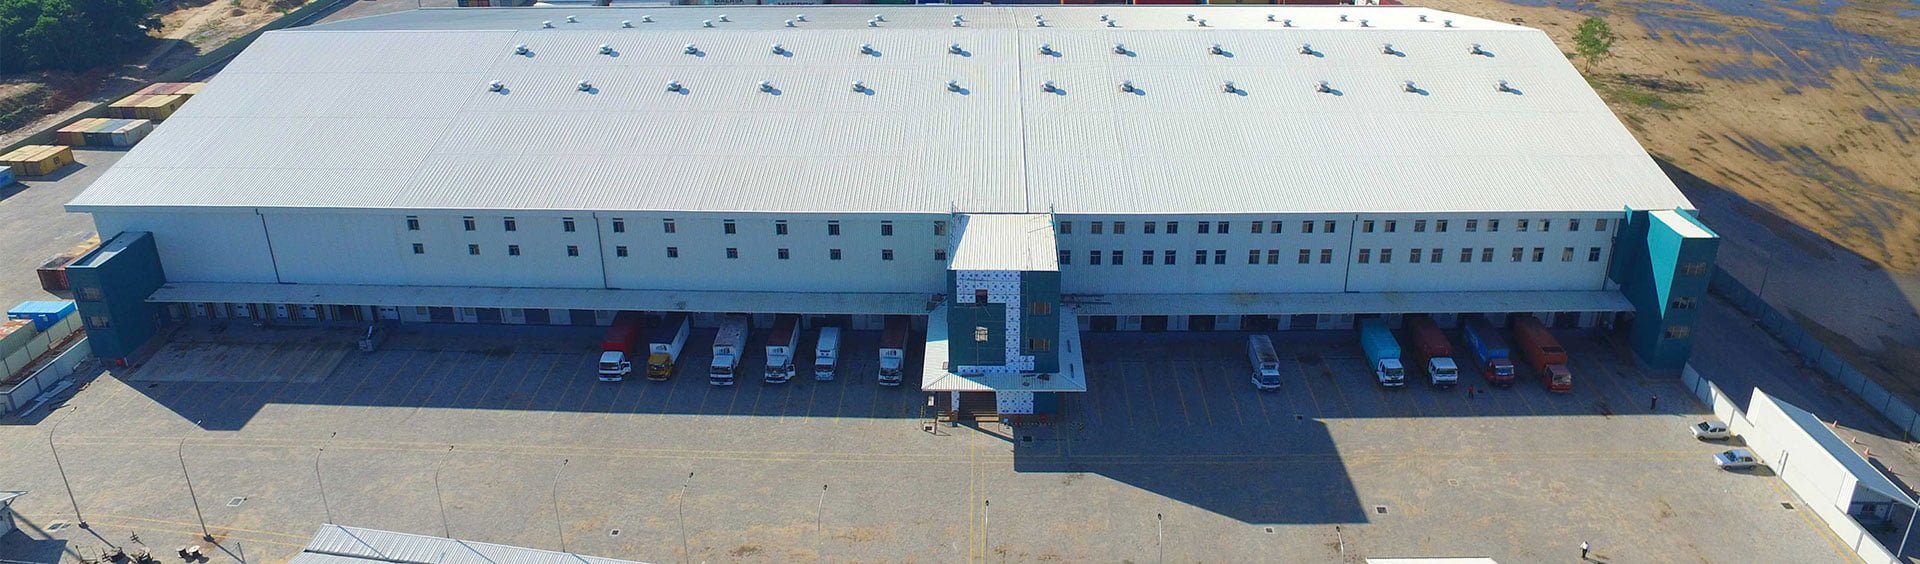 Launching Spectra Logistics Facility